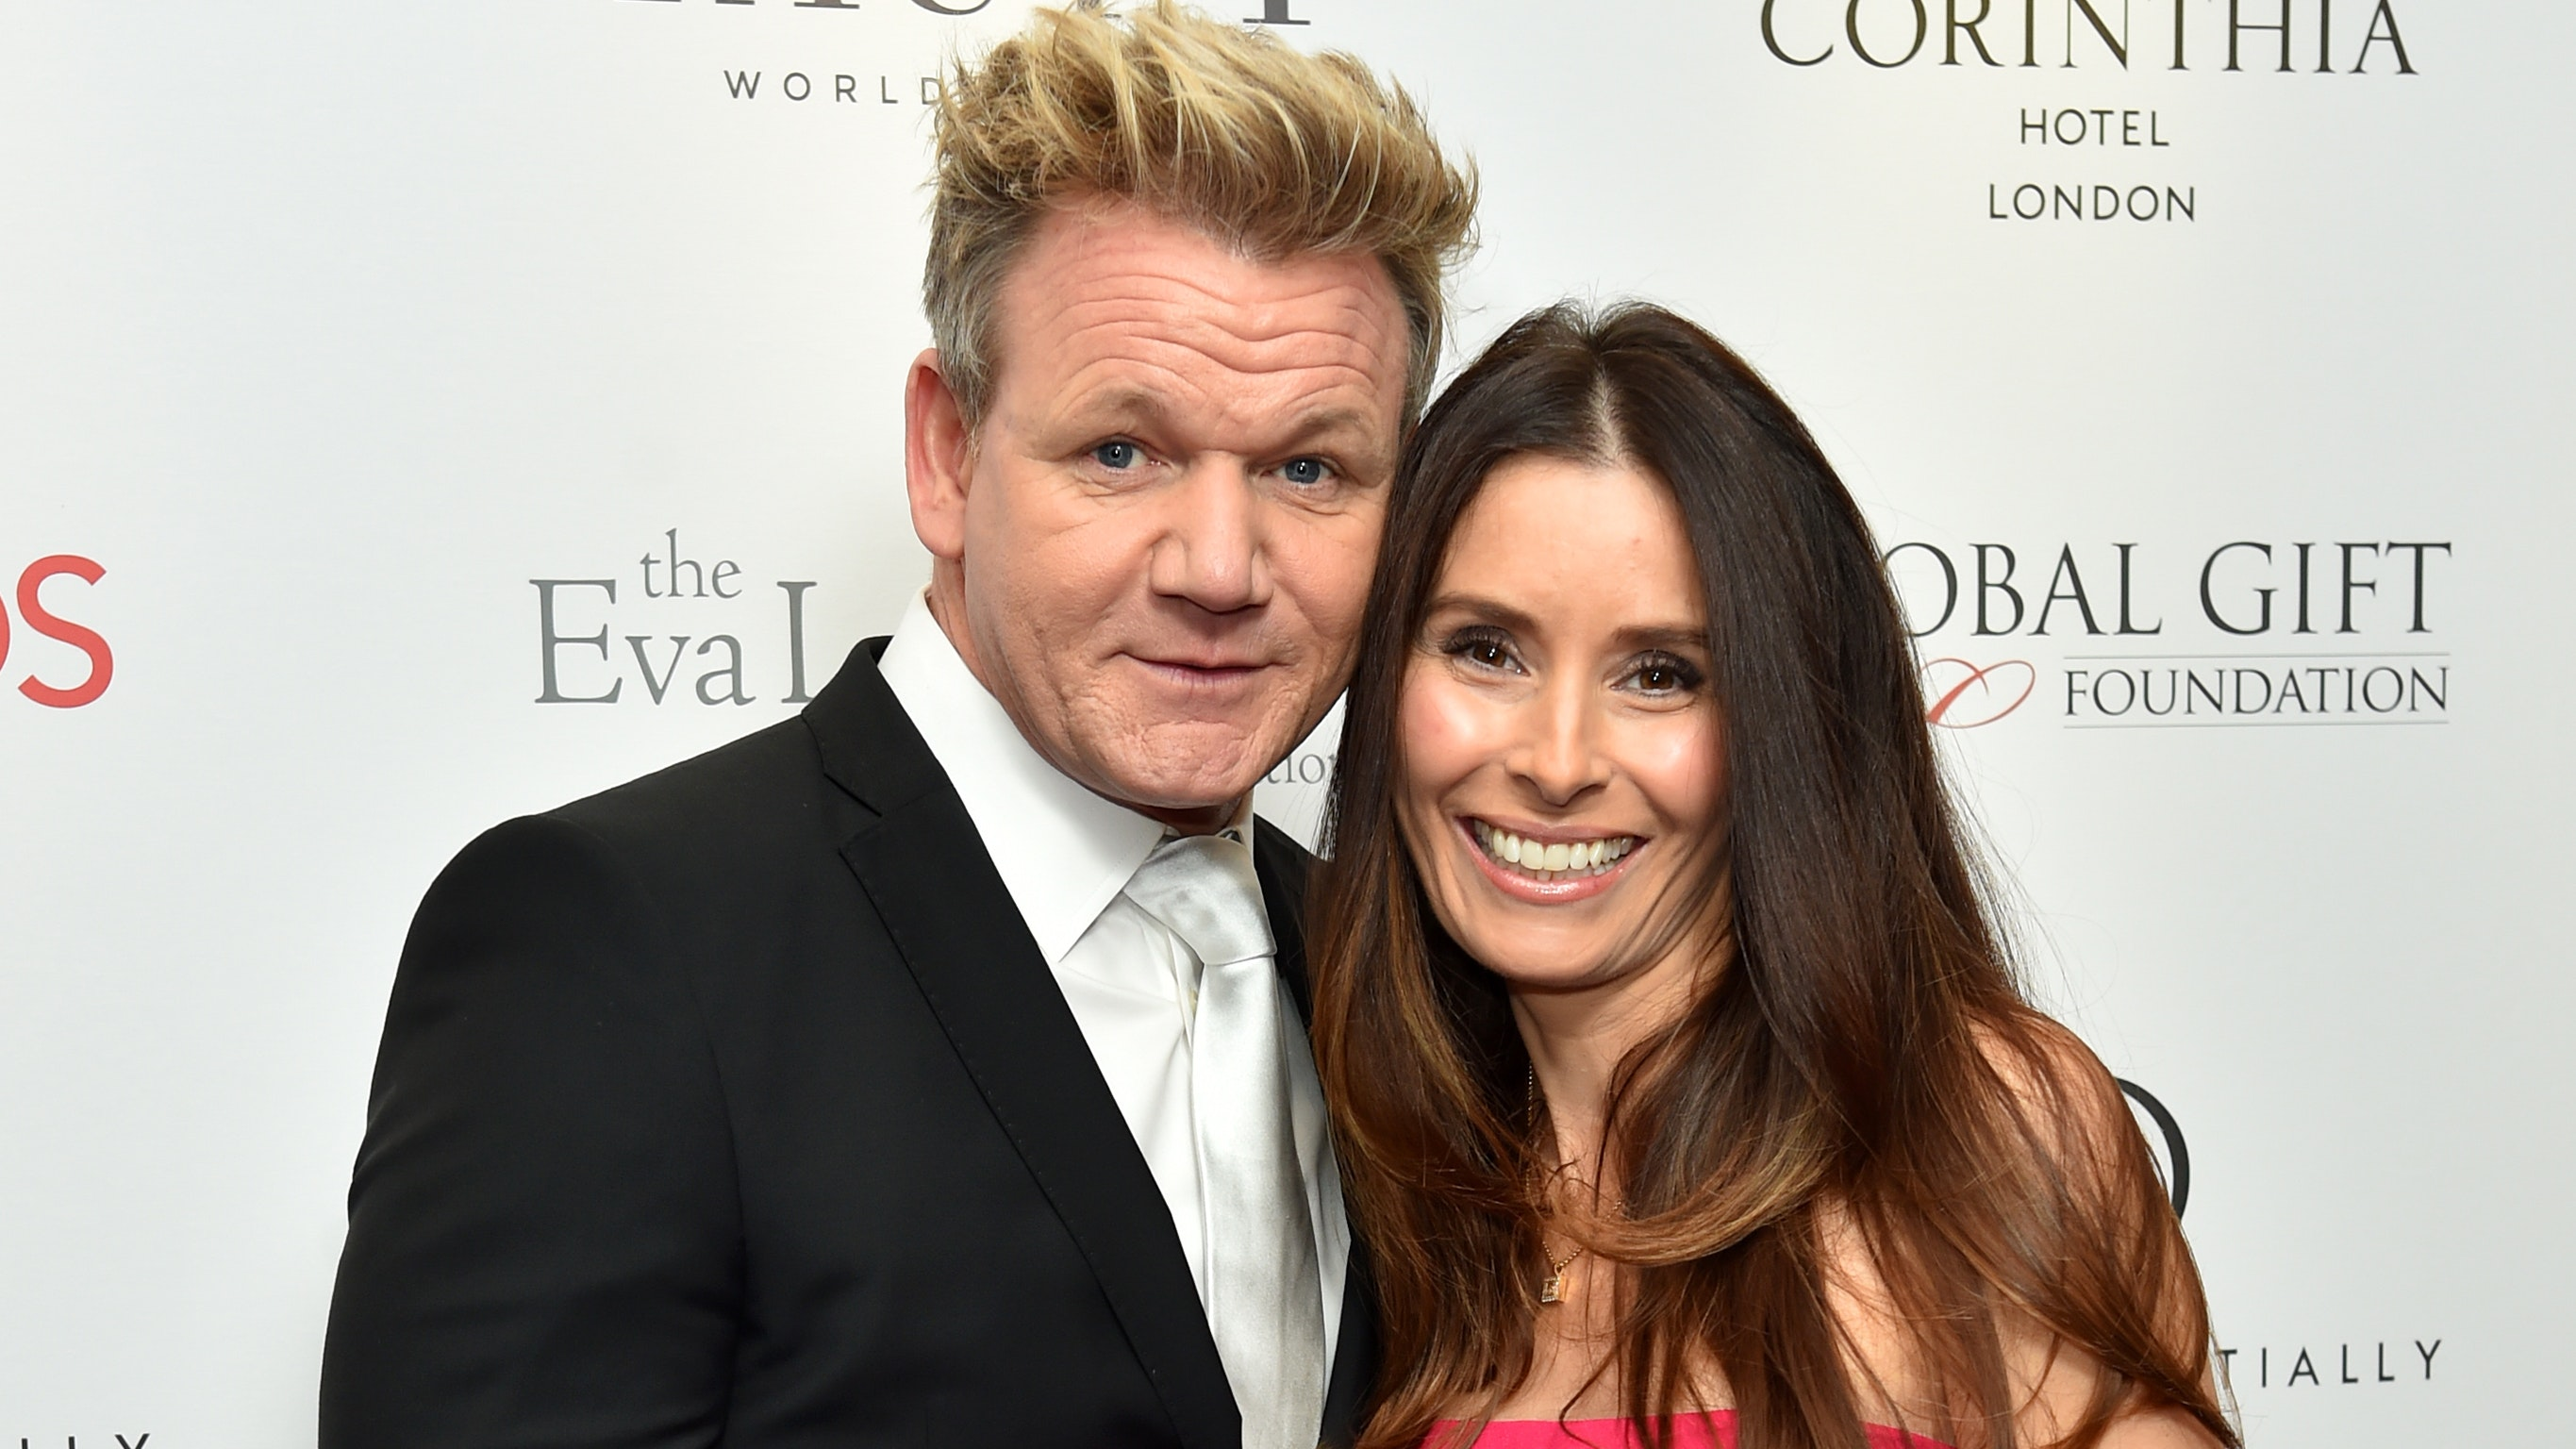 Gordon Ramsay And Wife Tana Have Officially Welcomed A Healthy Baby Boy